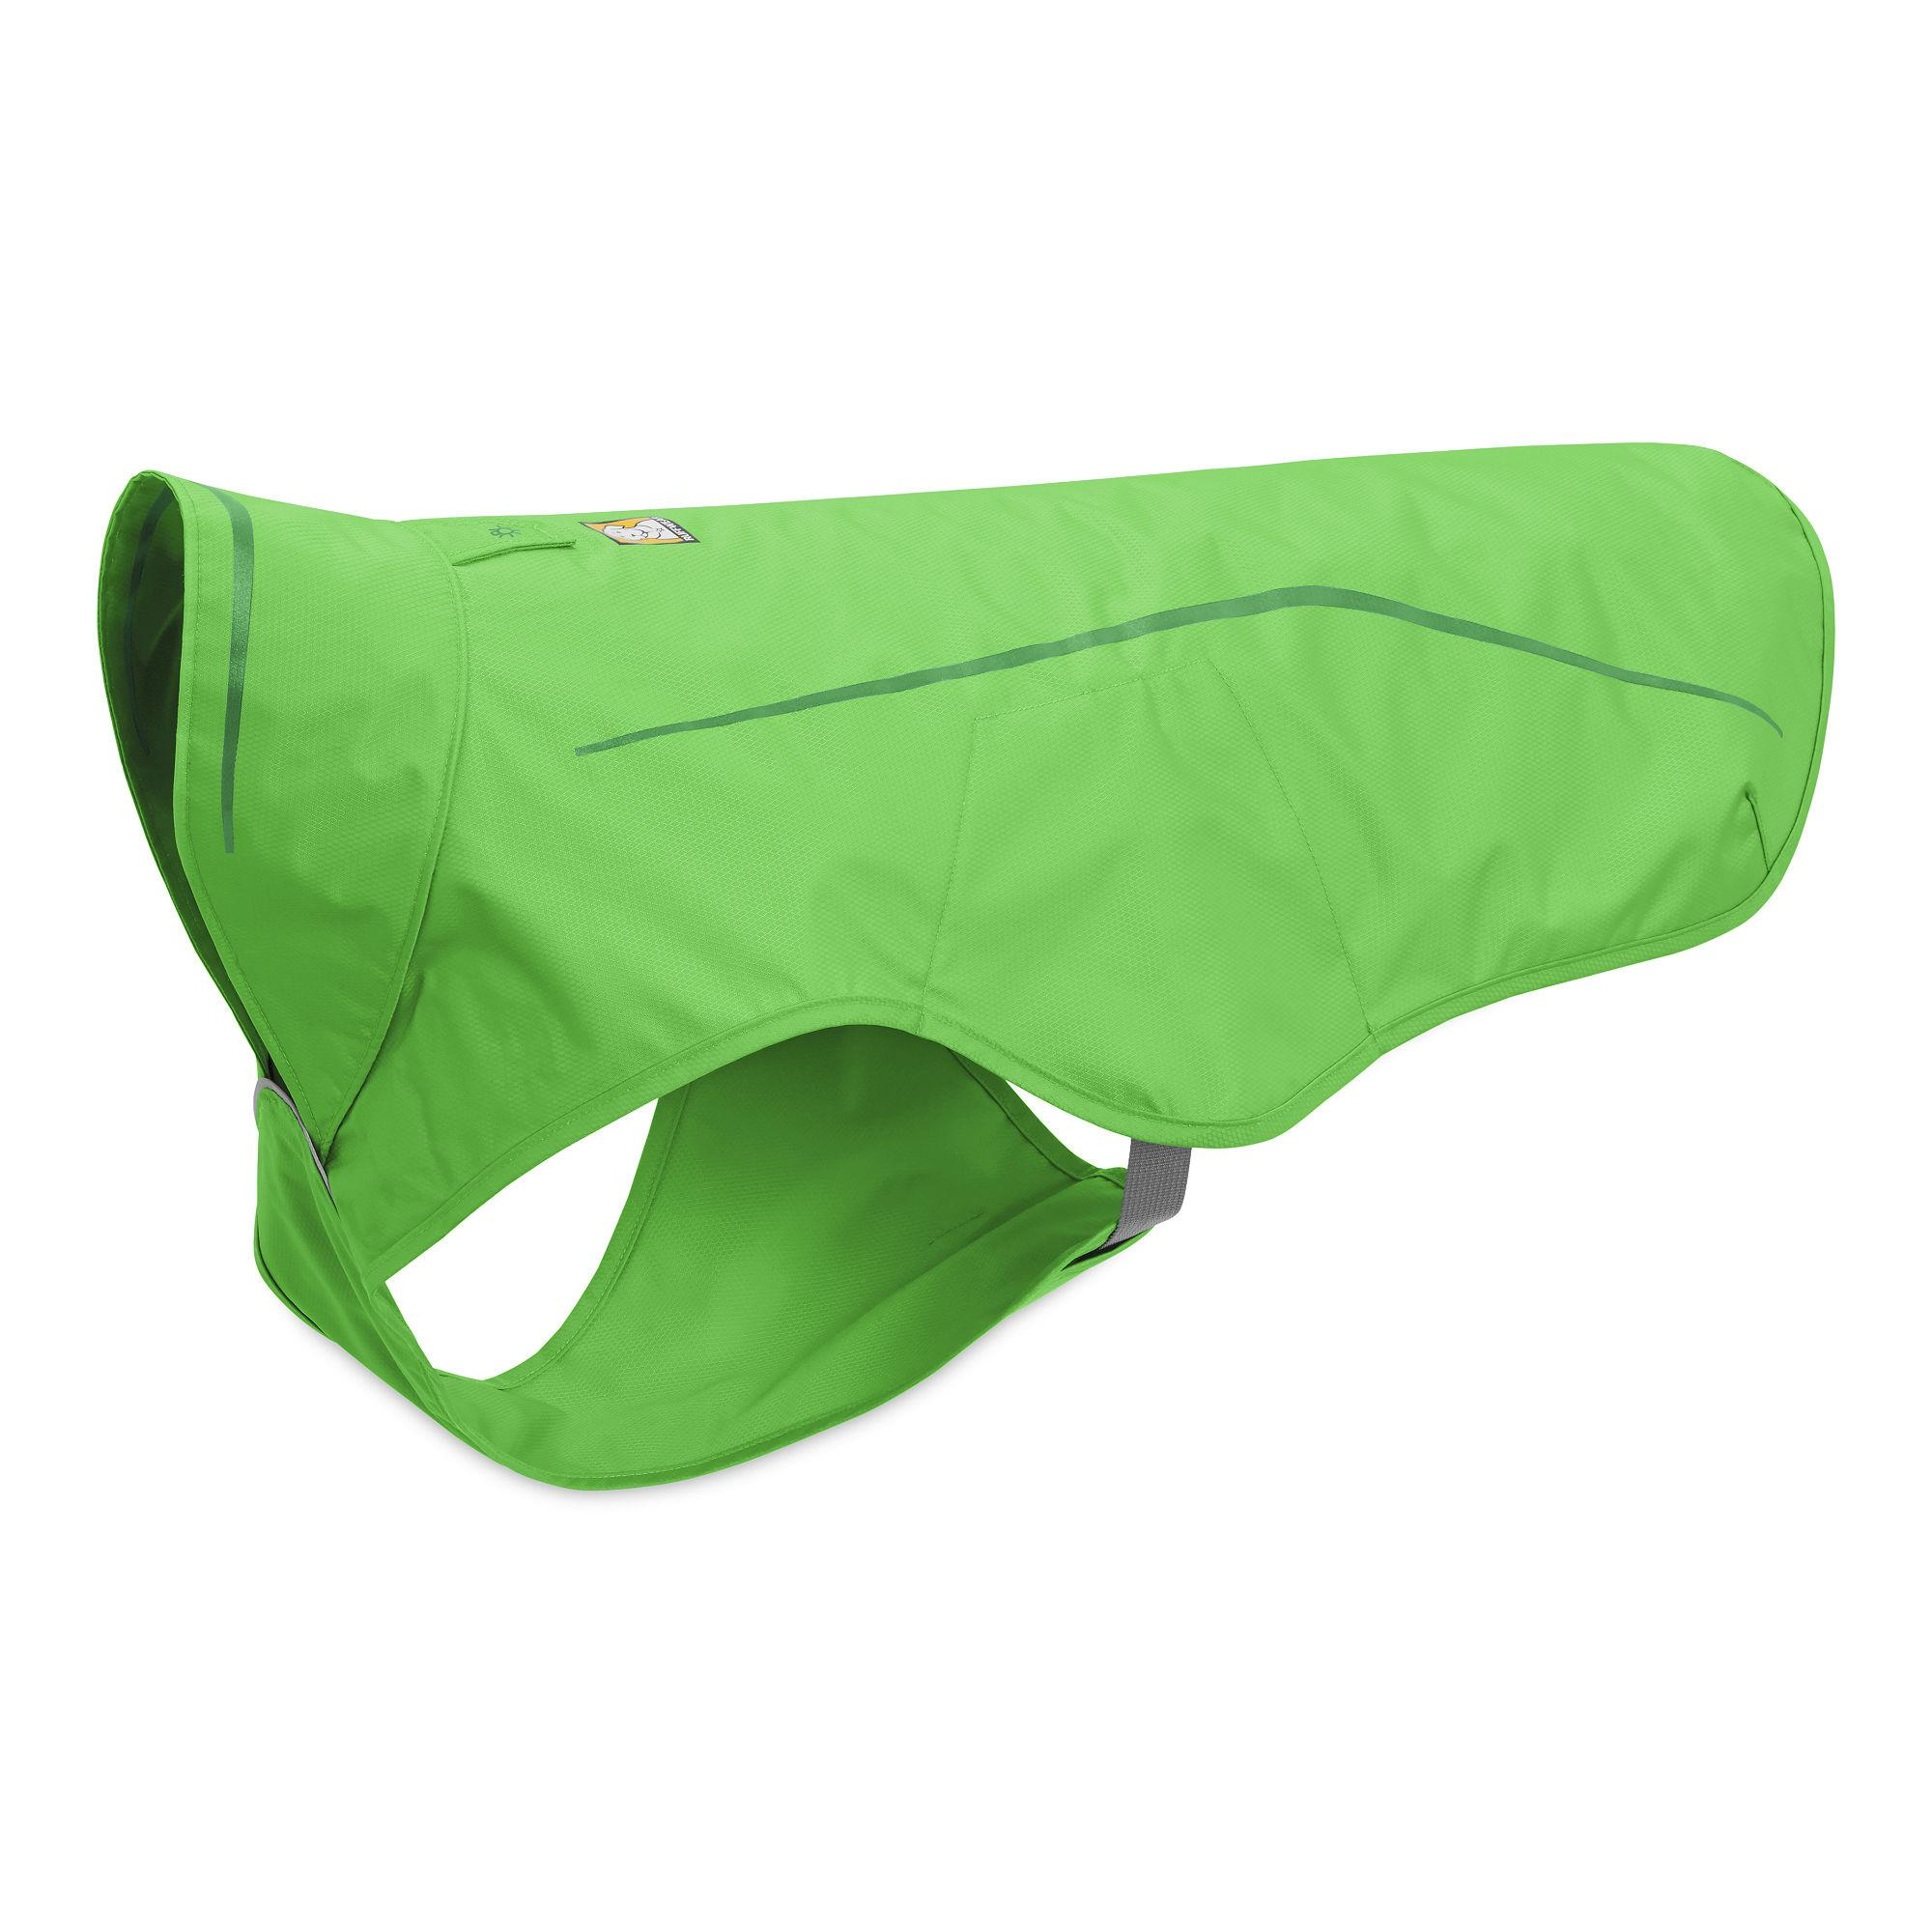 Sun Shower Dog Rain Jacket by RuffWear - Meadow Green